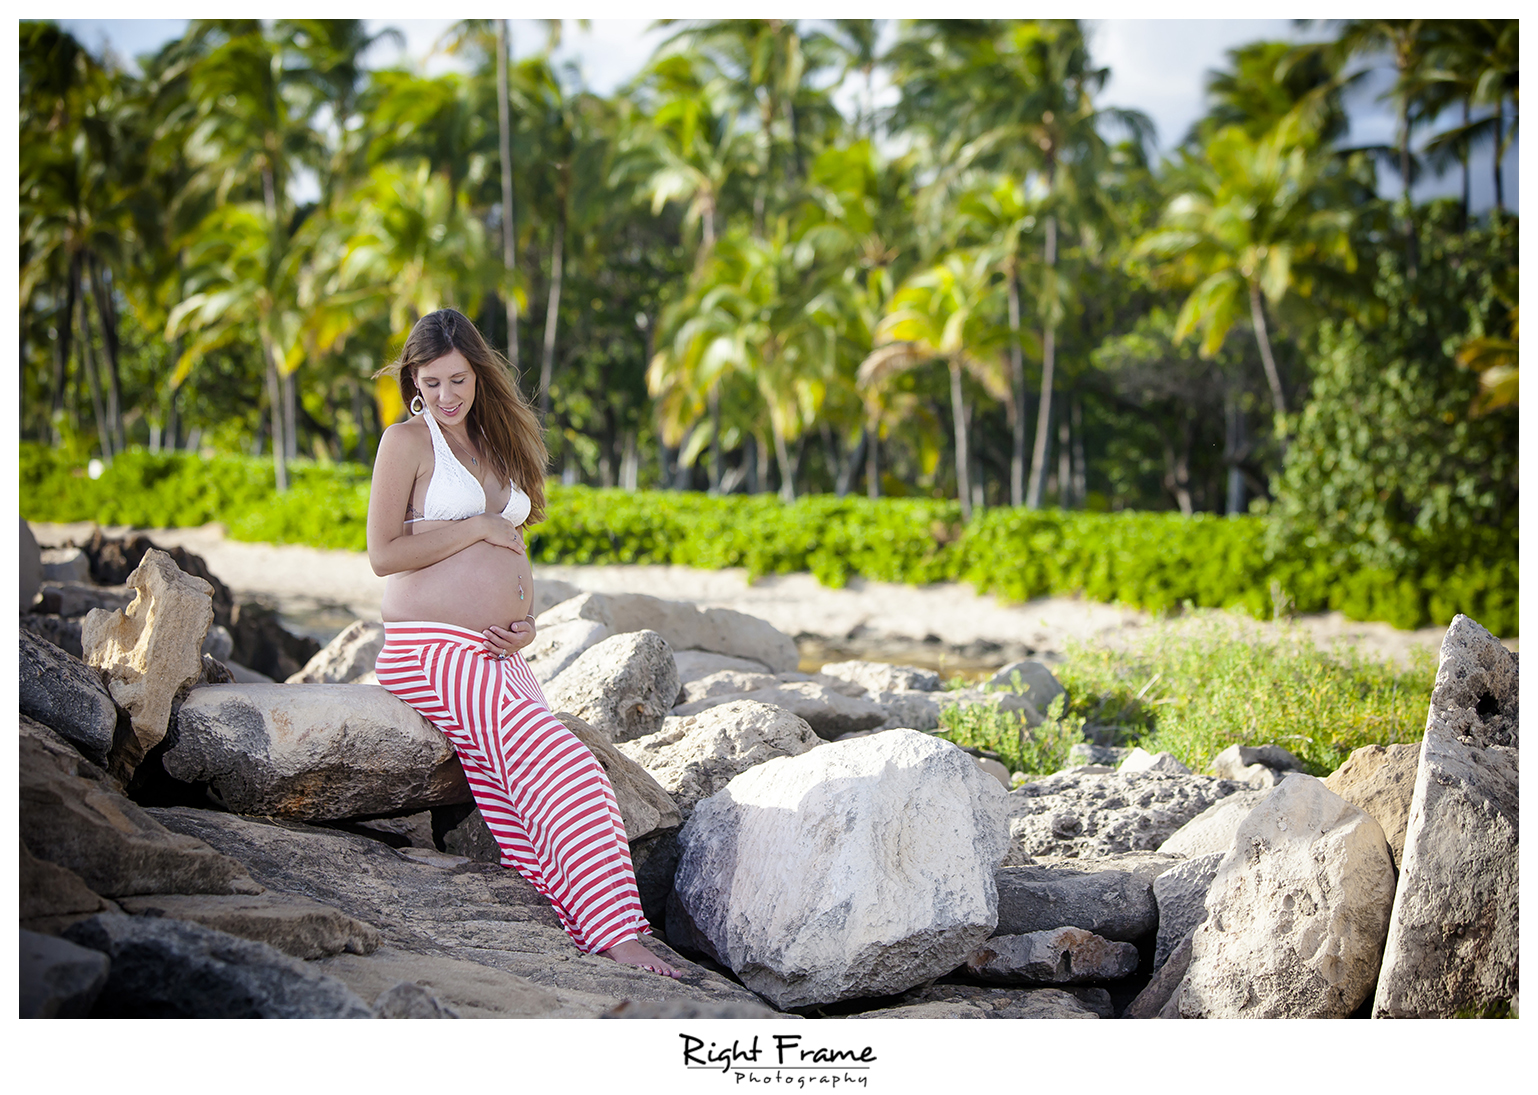 003_Honolulu_Maternity_Photography